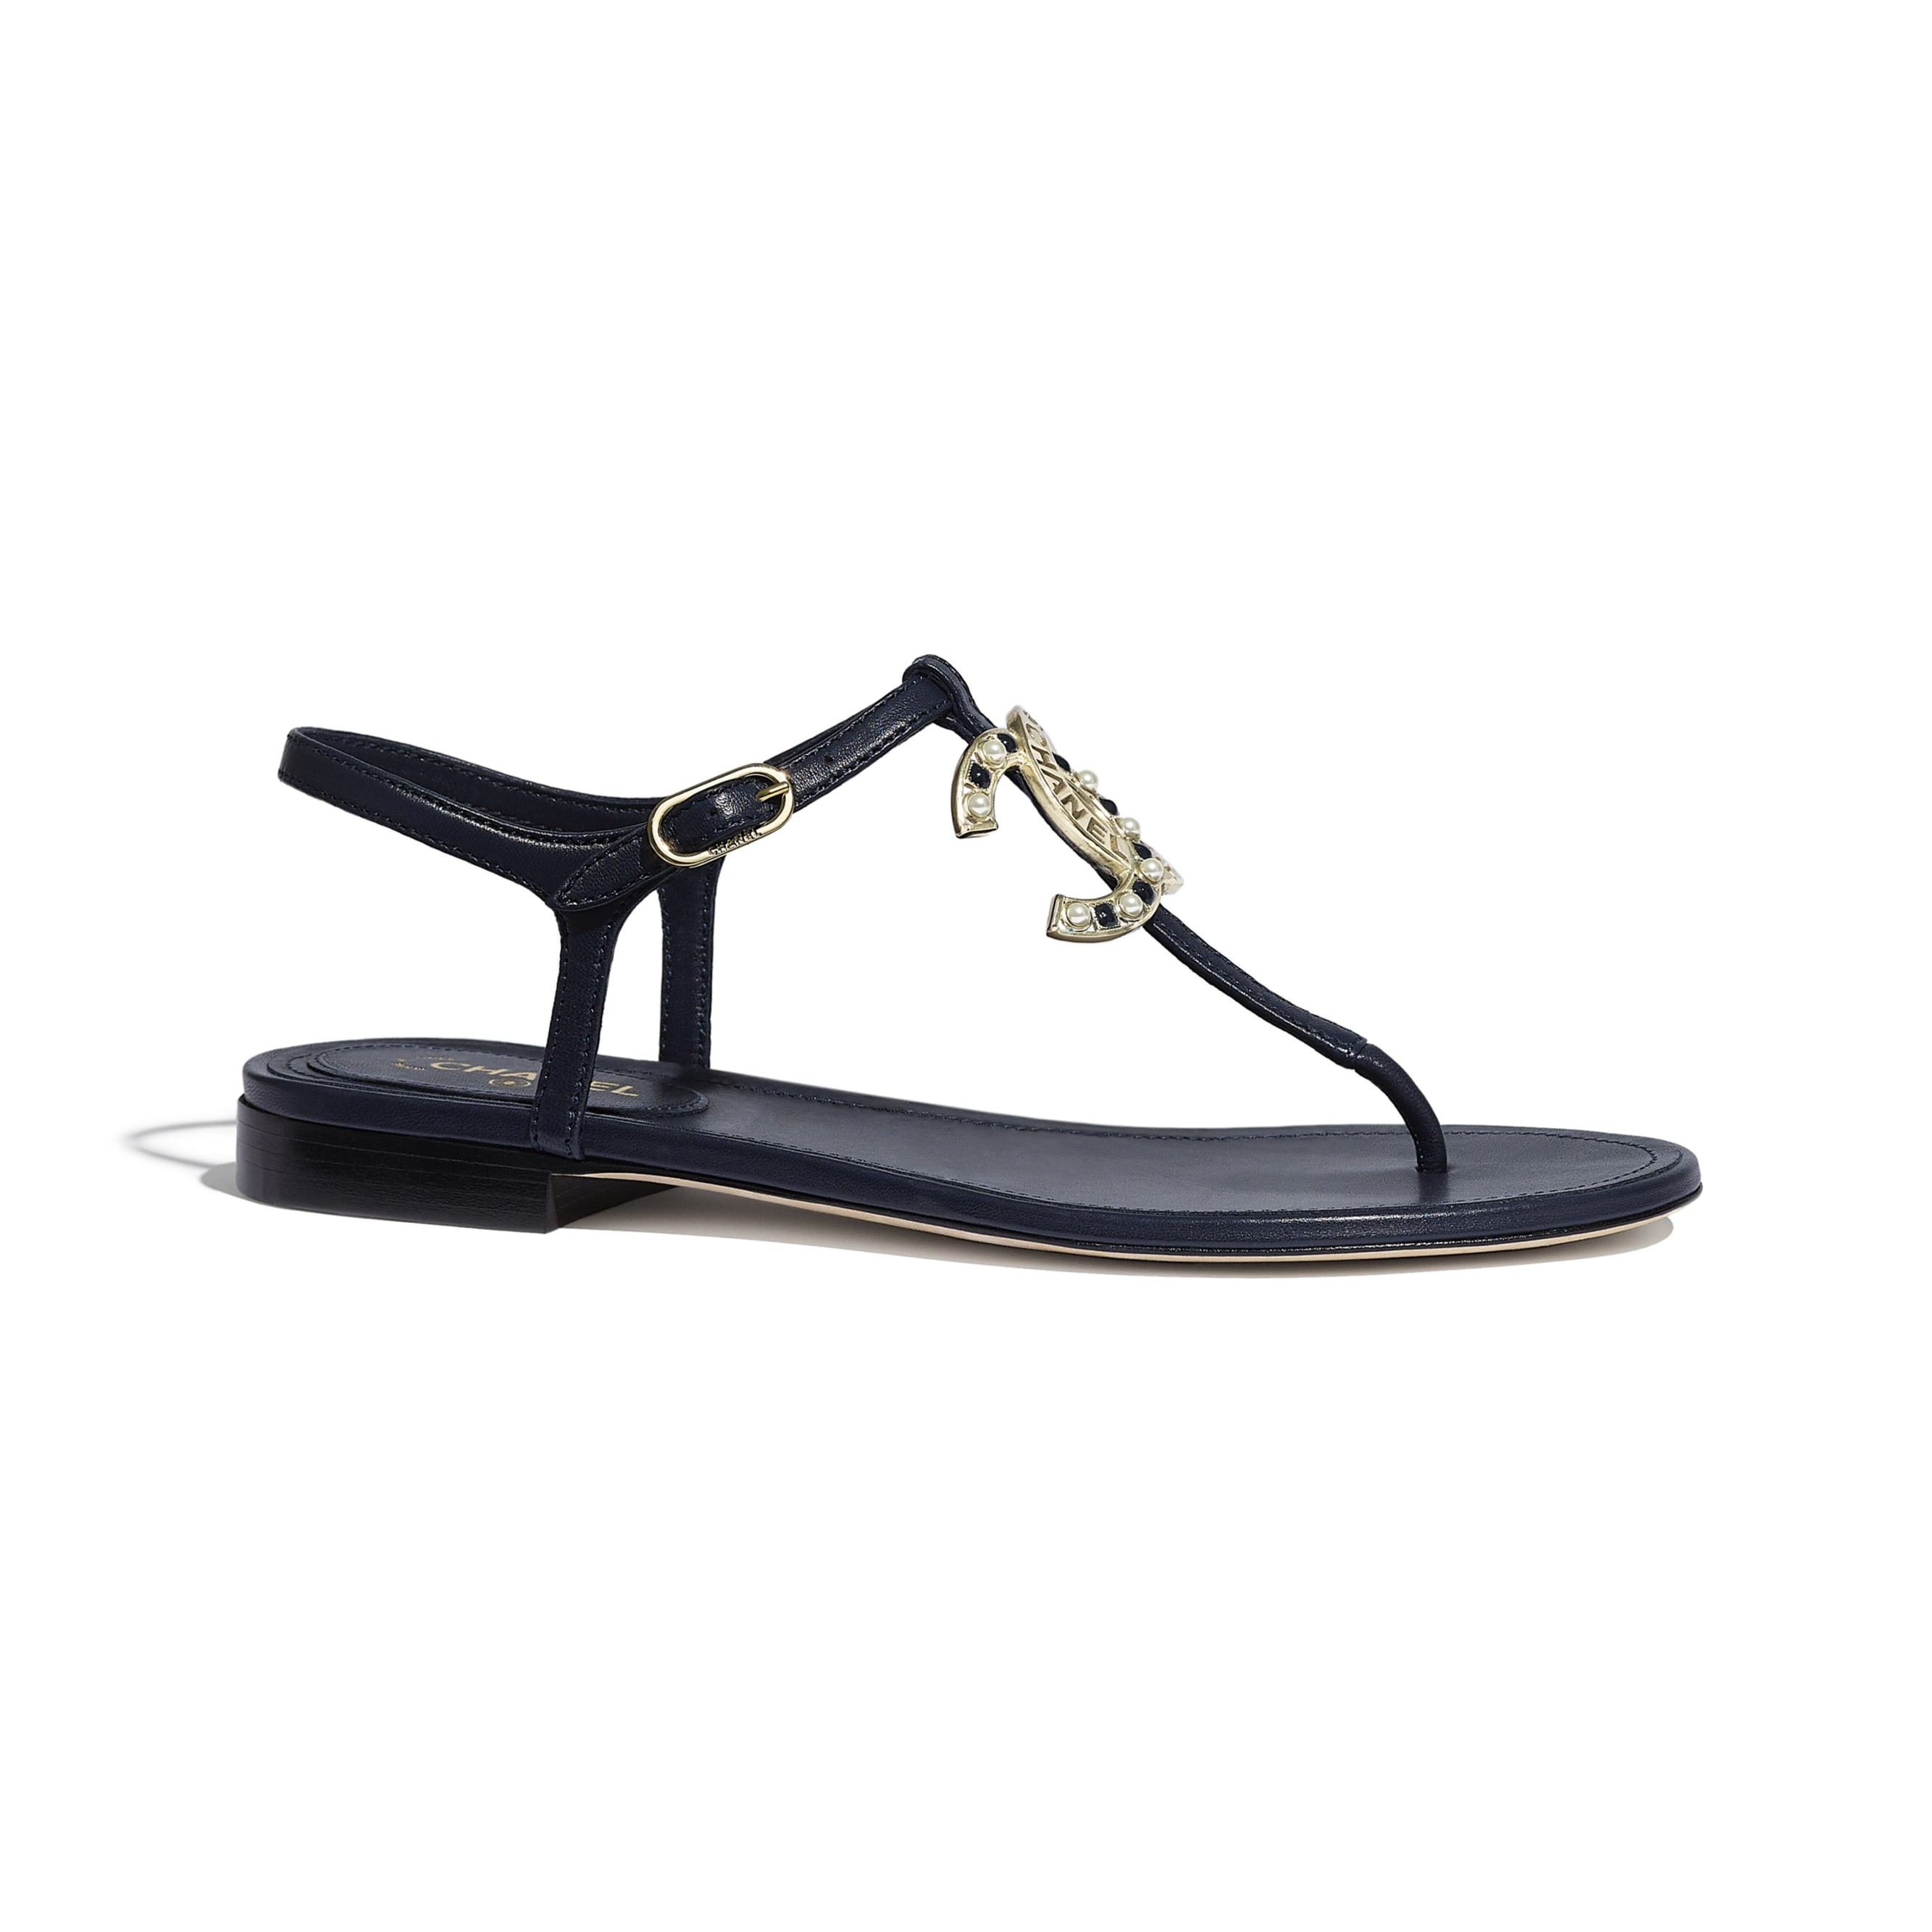 Sandals - Navy Blue - Lambskin - CHANEL - Default view - see standard sized version